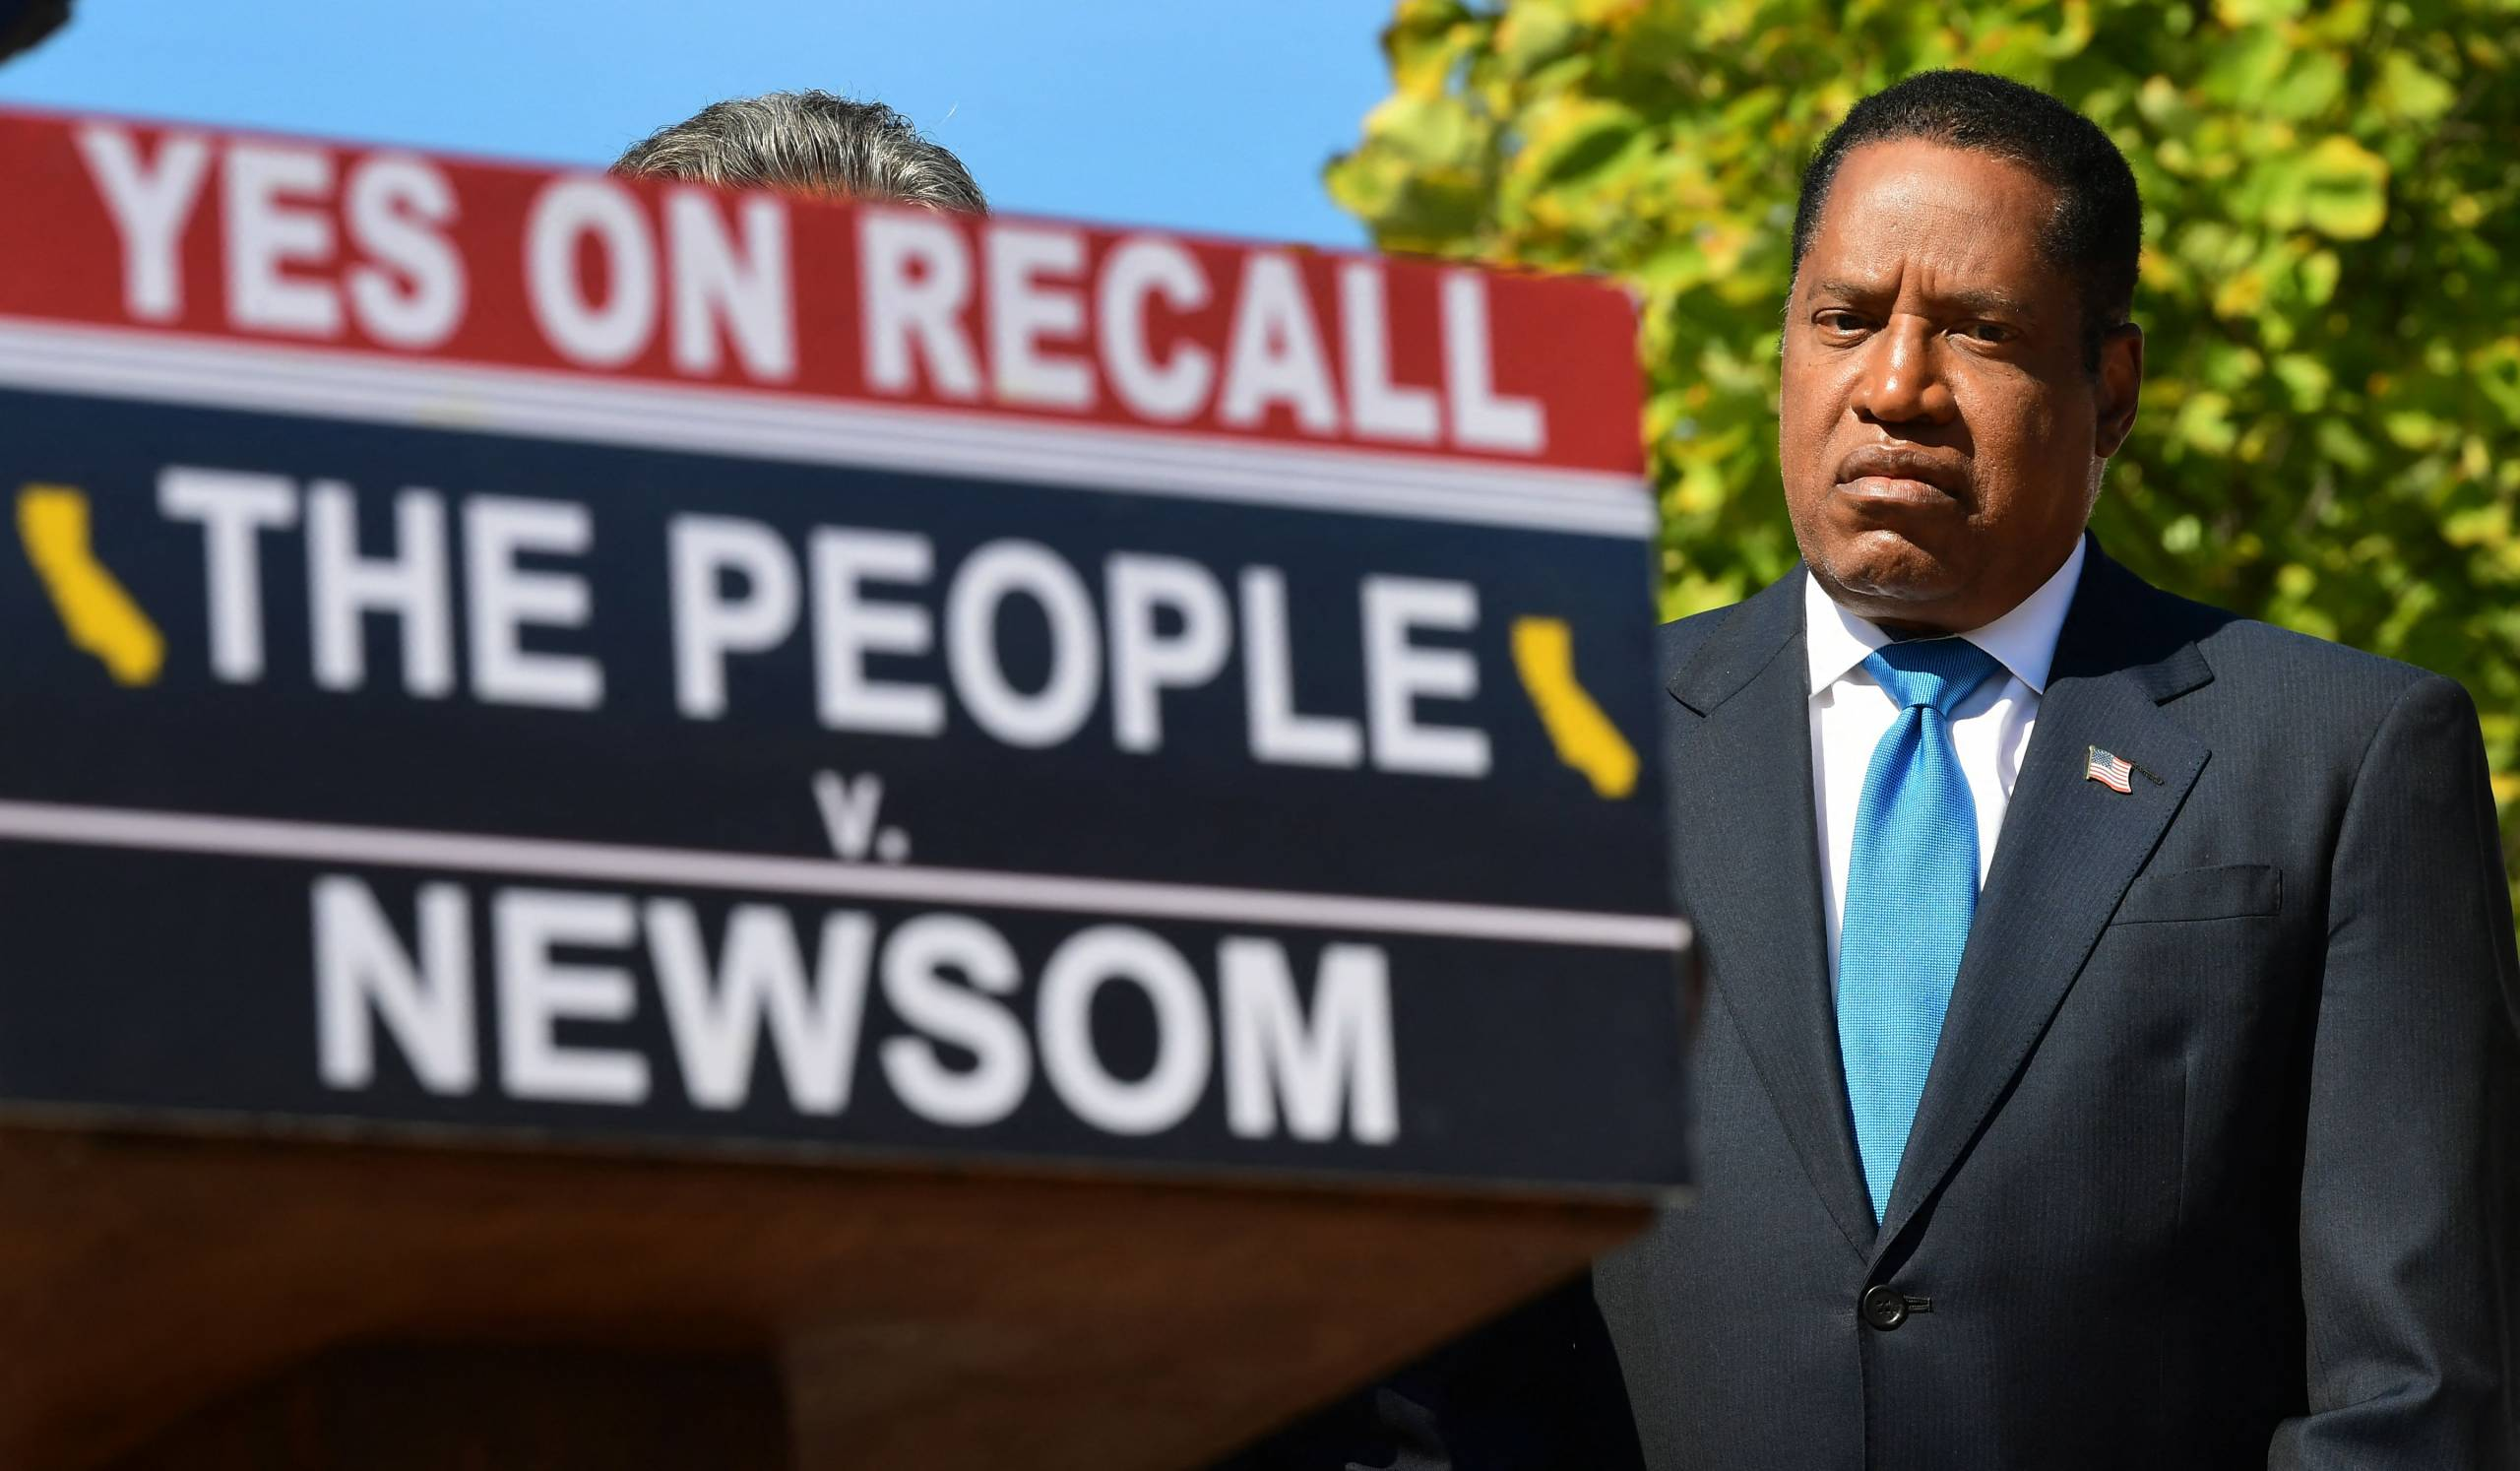 """Larry Elder stands near a podium sign that reads, """"Yes on Recall, The People v. Newsom."""""""